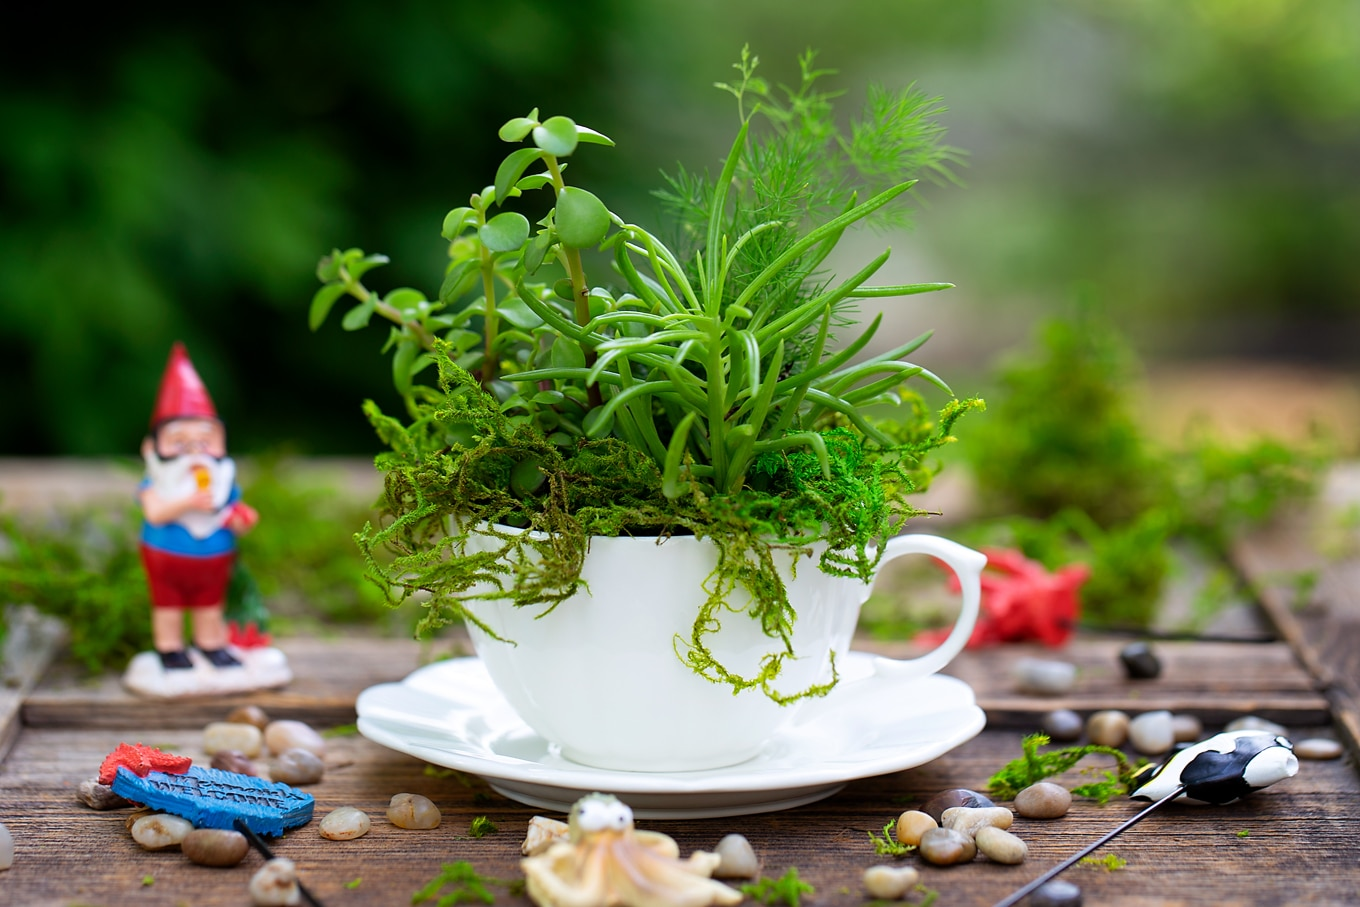 White Teacup Filled with Succulents and Moss